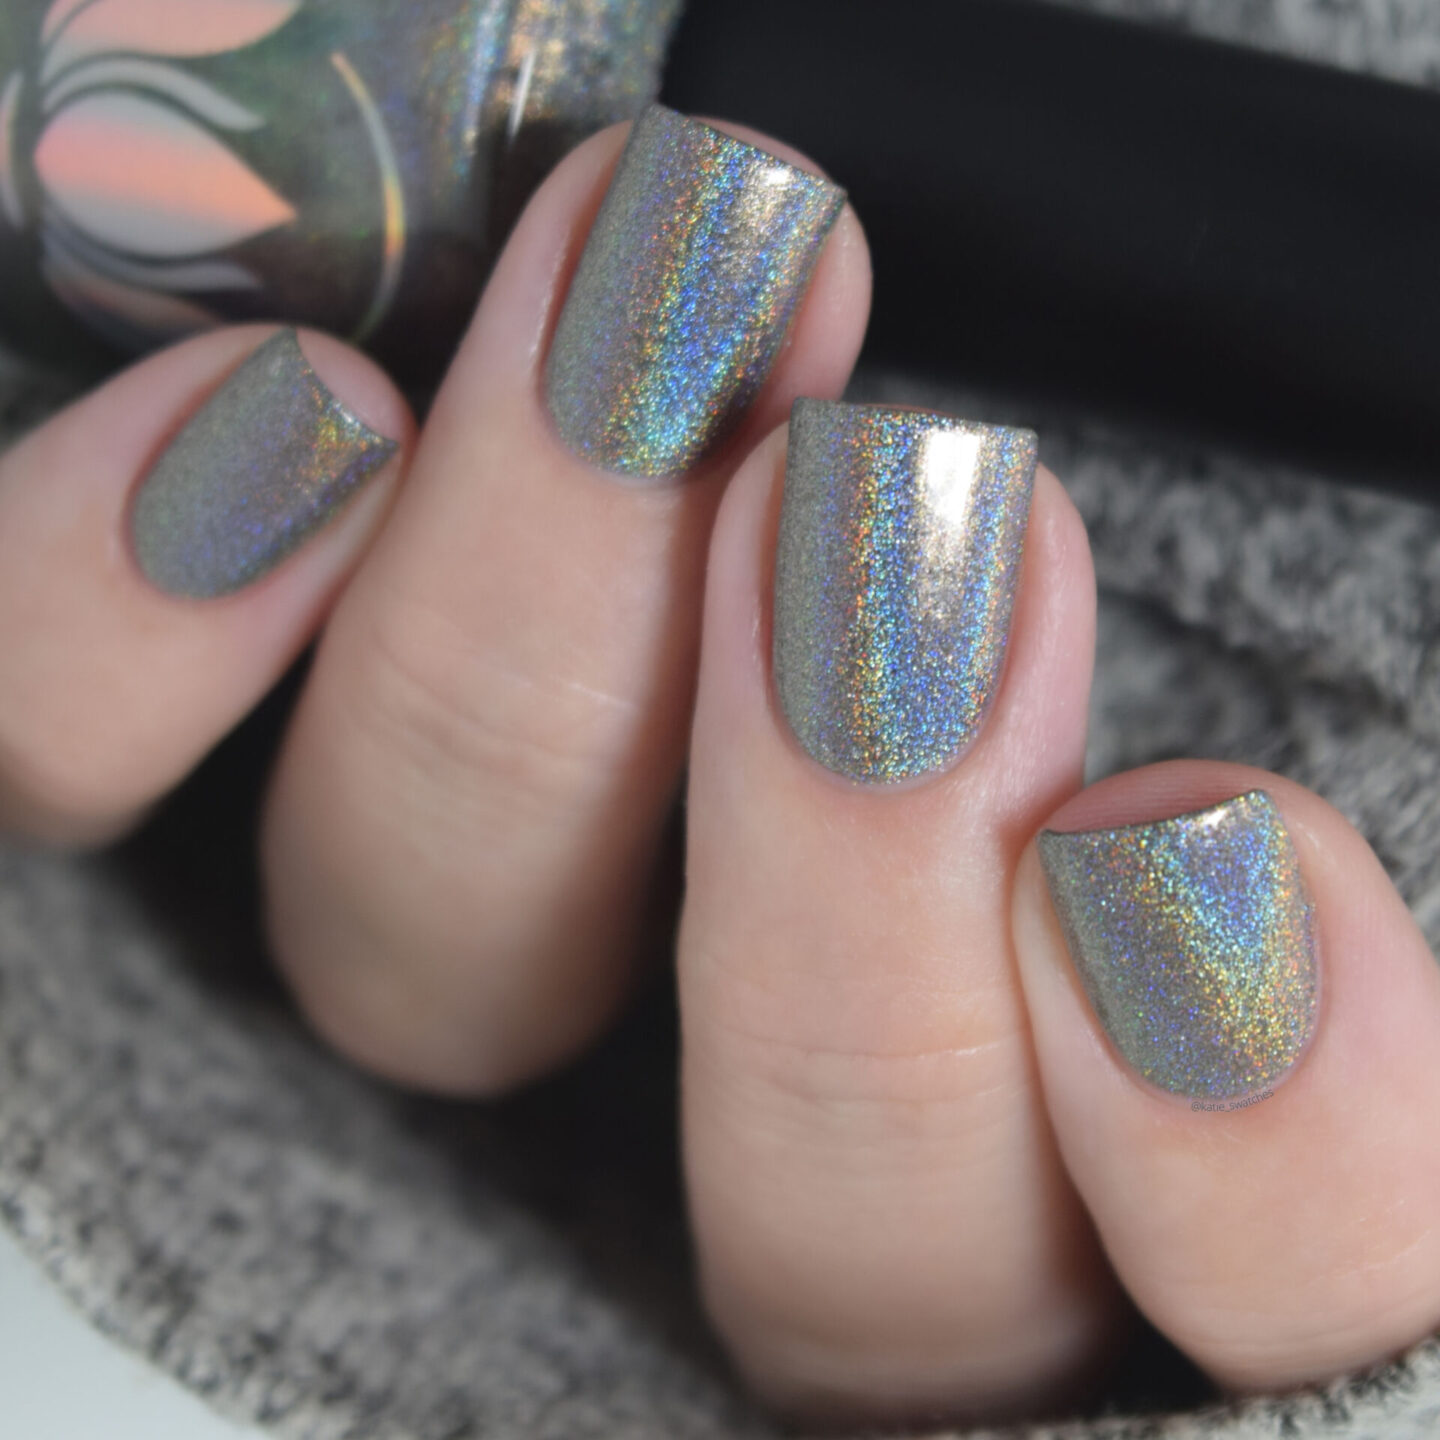 Ethereal Lacquer Mando grey beige holographic nail polish swatch The Mandalorian themed Mystery nail polish